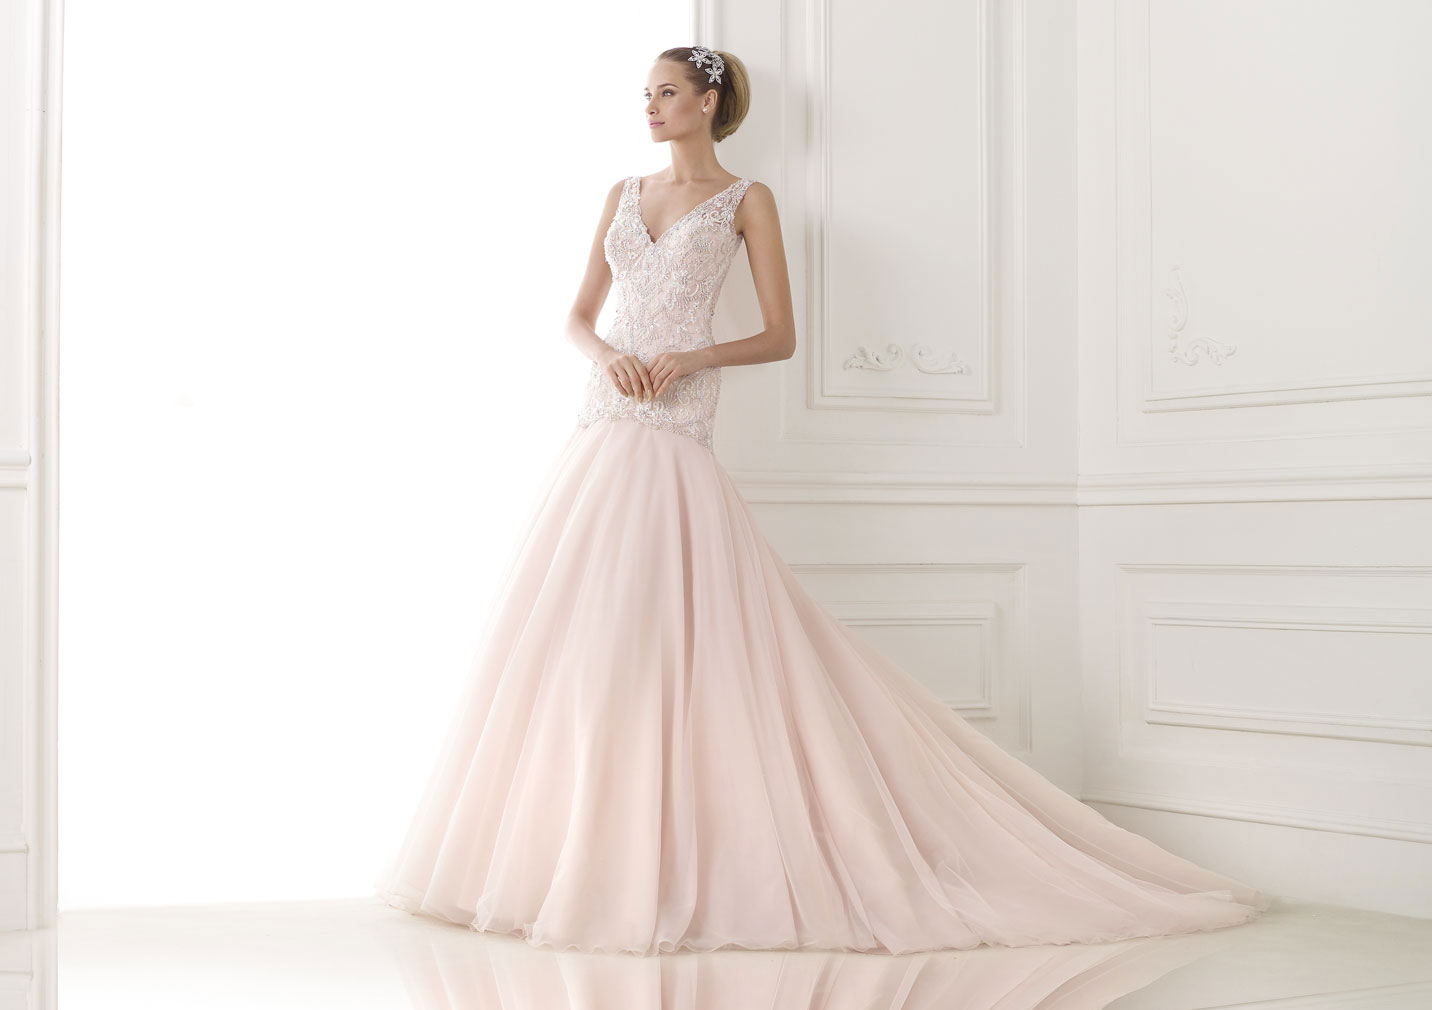 Wedding dresses, Bridesmaids and Mothers gowns,Tuxedos and more